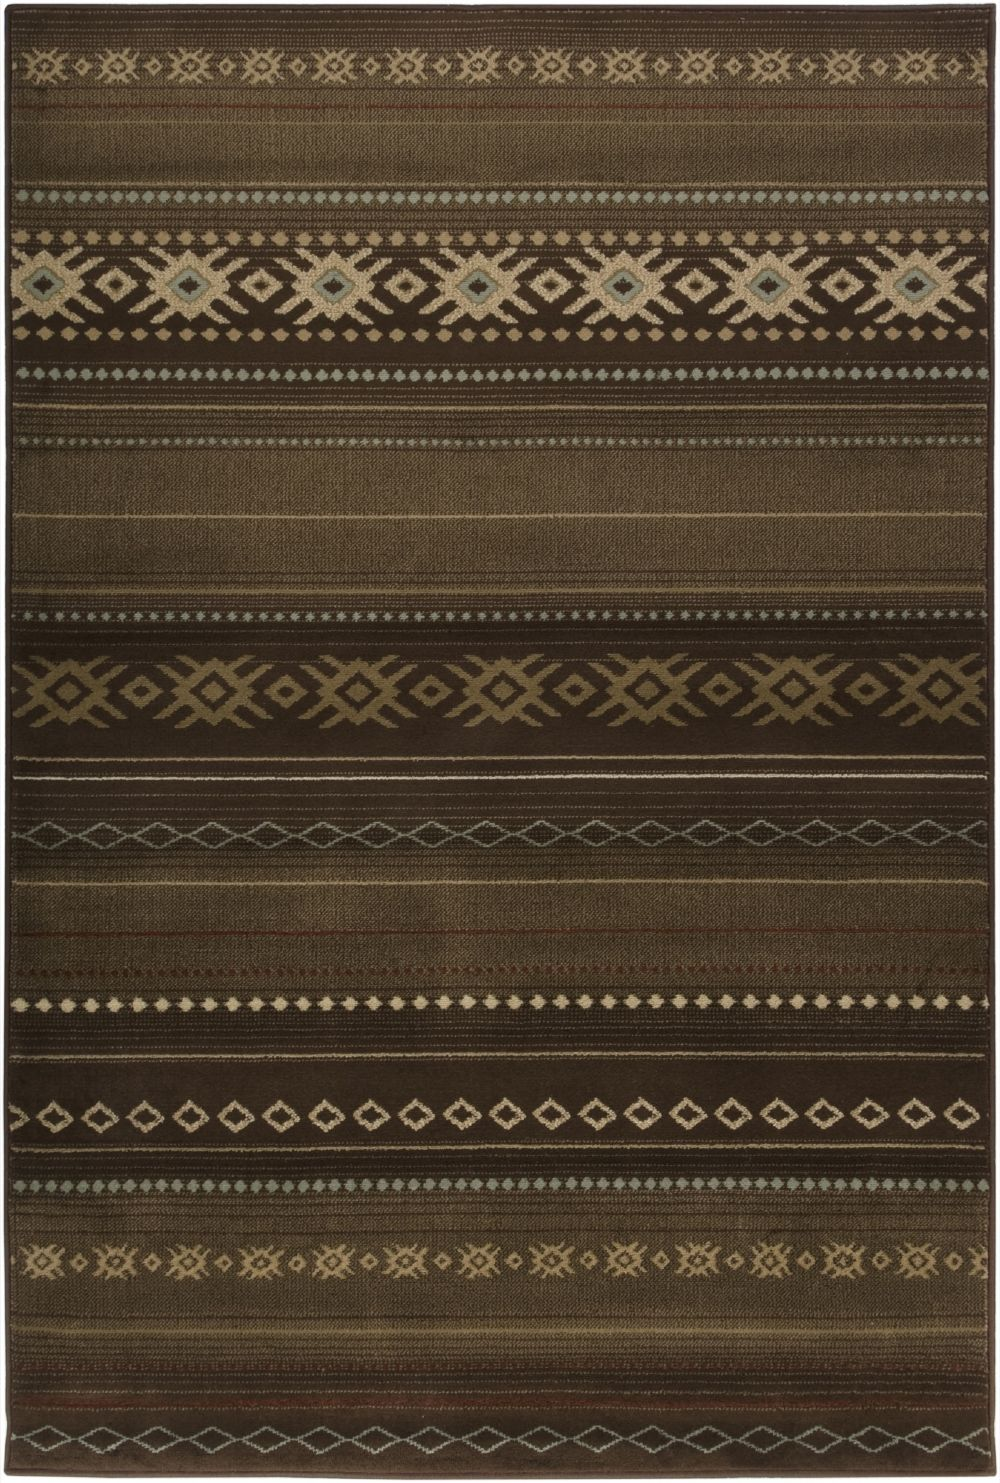 surya paramount southwestern/lodge area rug collection